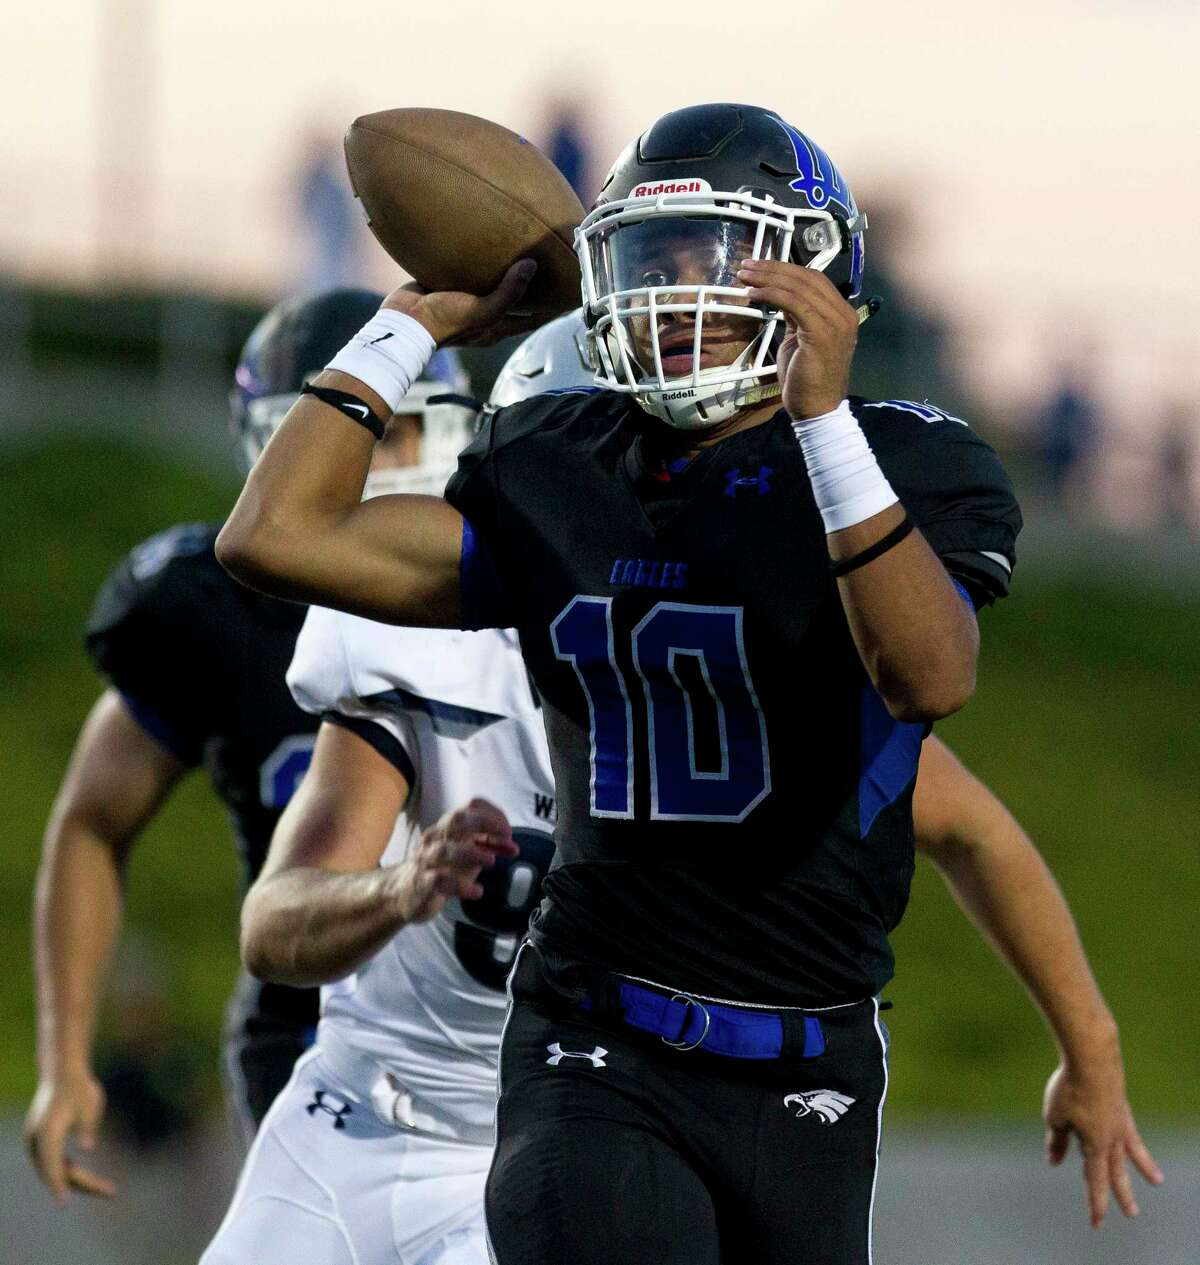 New Caney quarterback Jordan Cooper (10) throws under pressure during the first quarter of a non-district high school football game against Tomball Memorial at Texan Drive Stadium, Friday, Sept. 8, 2017, in New Caney.